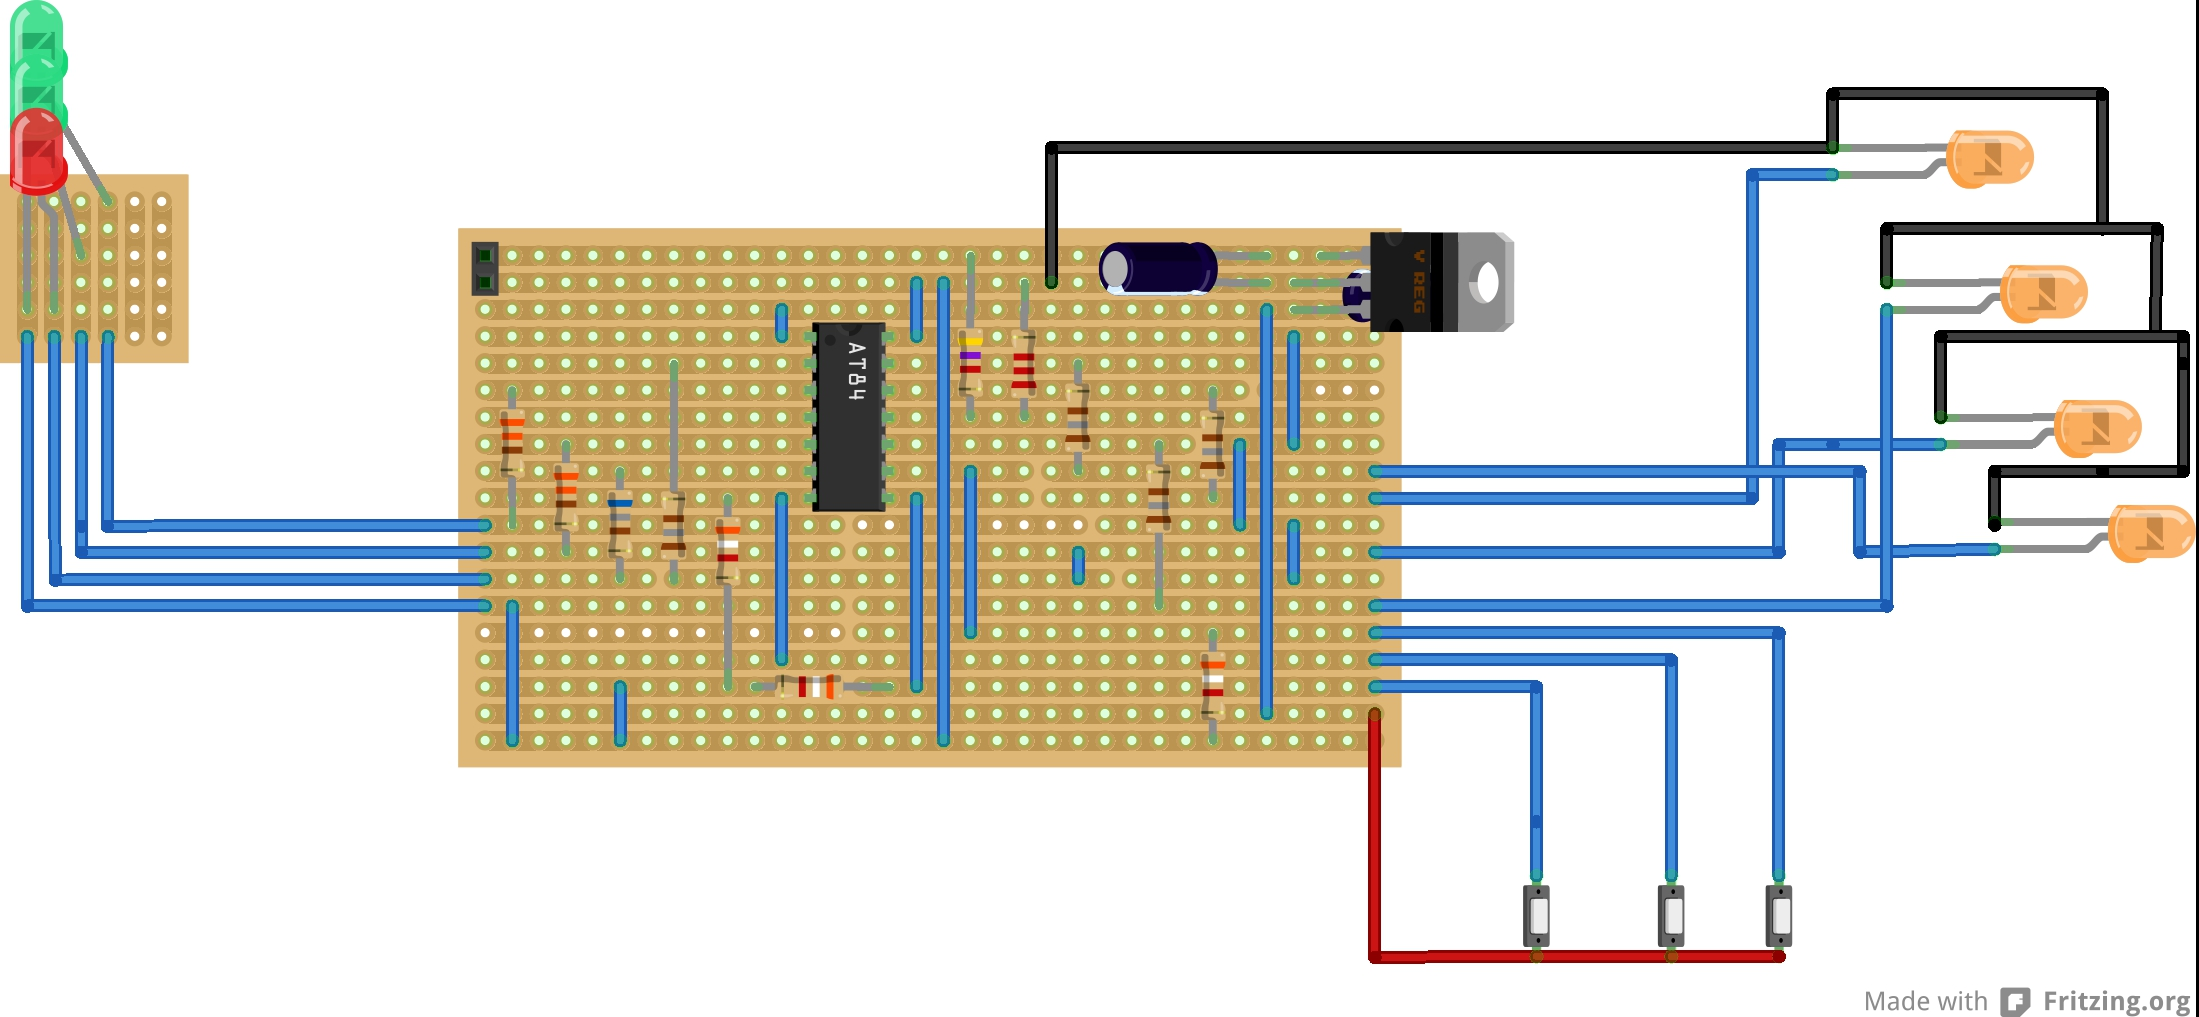 Car Lights Makicity Circuit Diagram Using Breadboard Firtzing Was Used To Create The And Stripboard Layout Created First Which Caused Some Issues When Trying